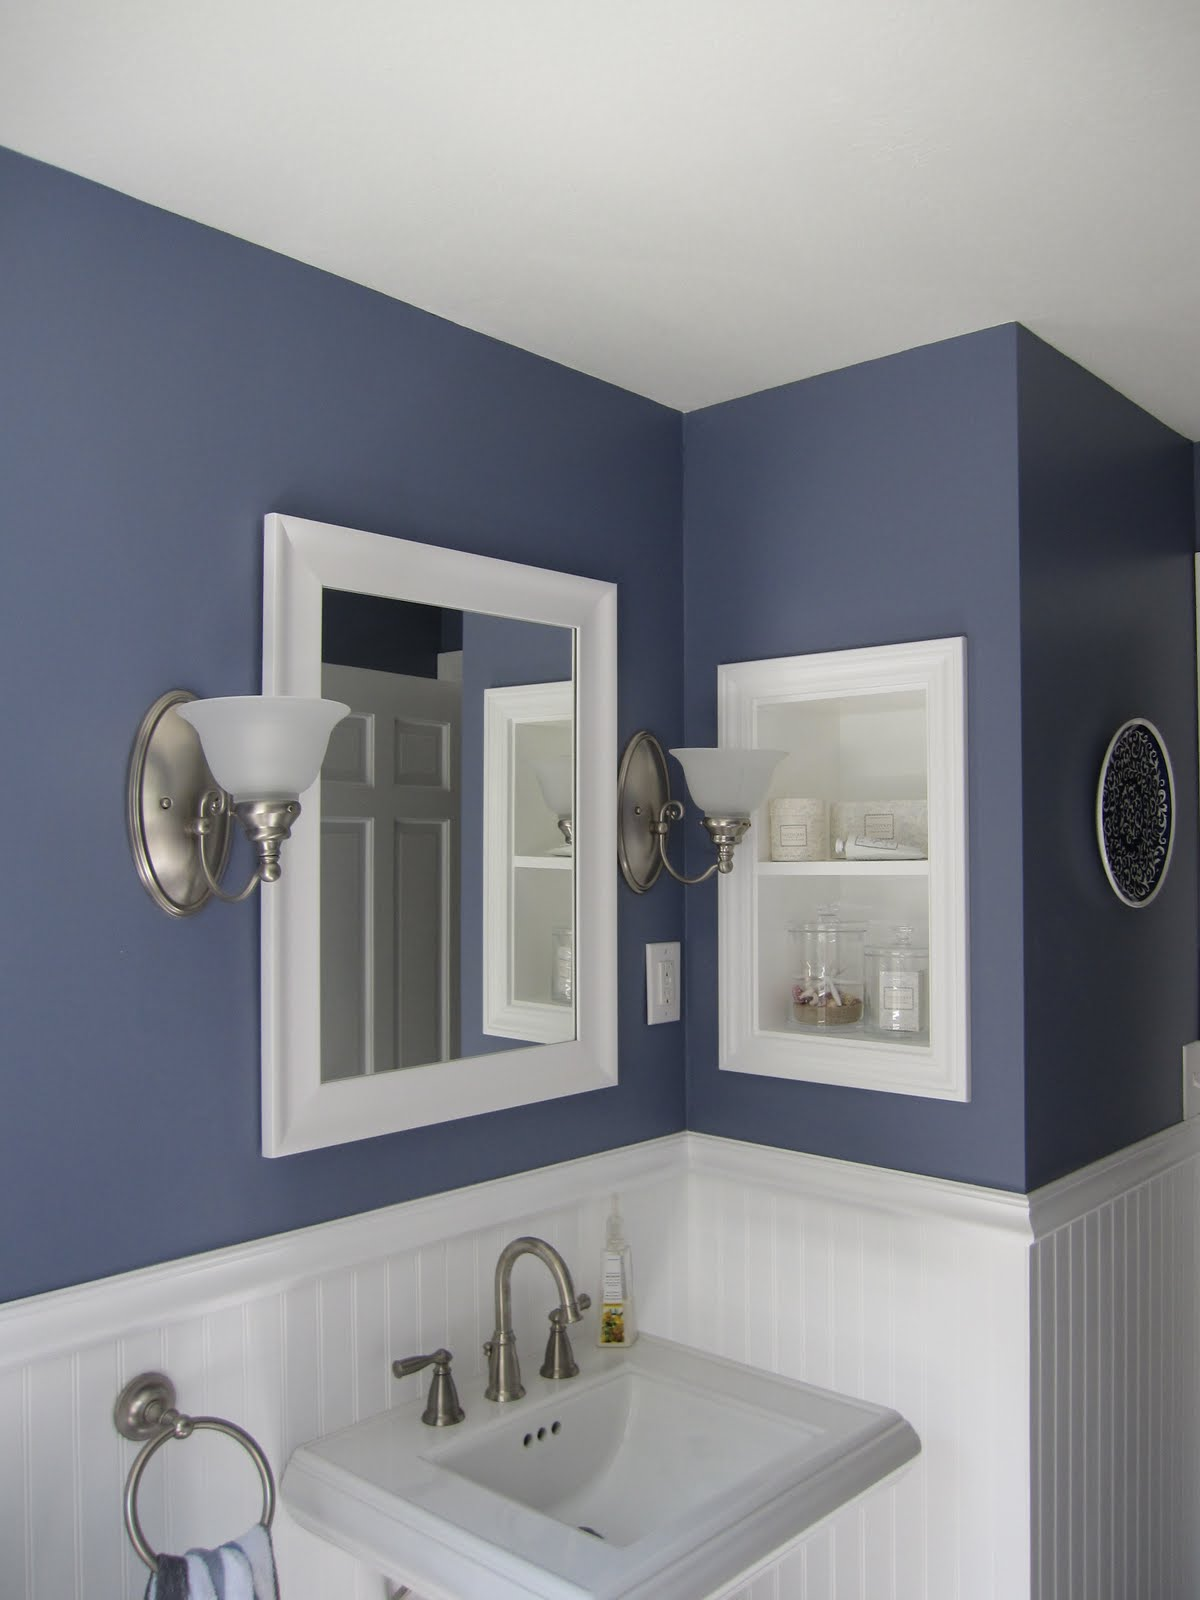 RemodelaholicHalf Bath Remodel Before and After